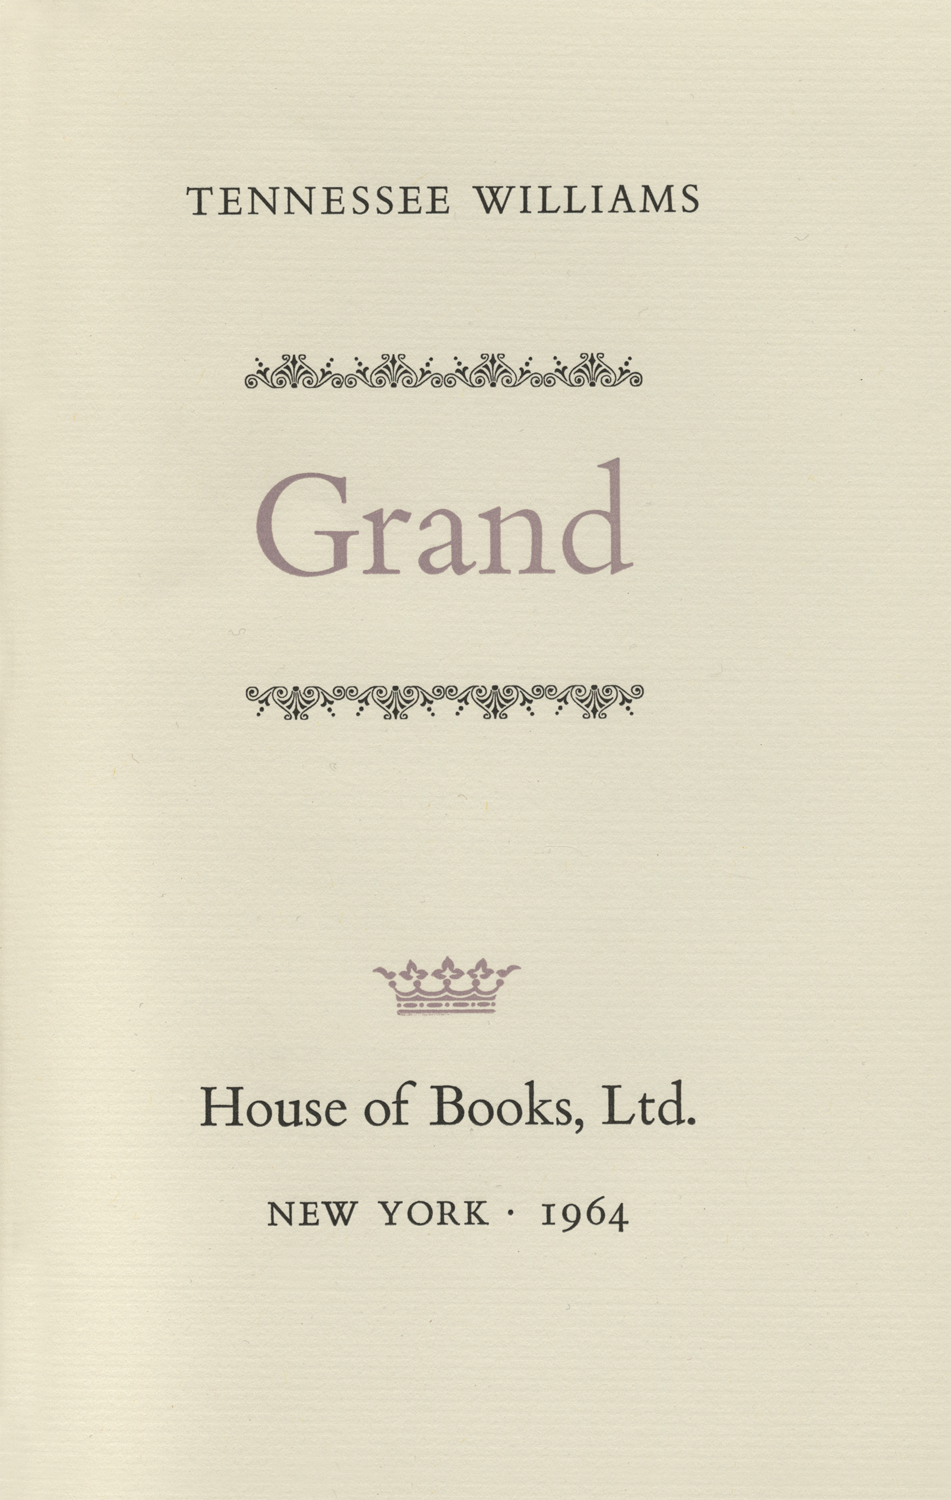 Stinehour_Williams_Grand_title page.png